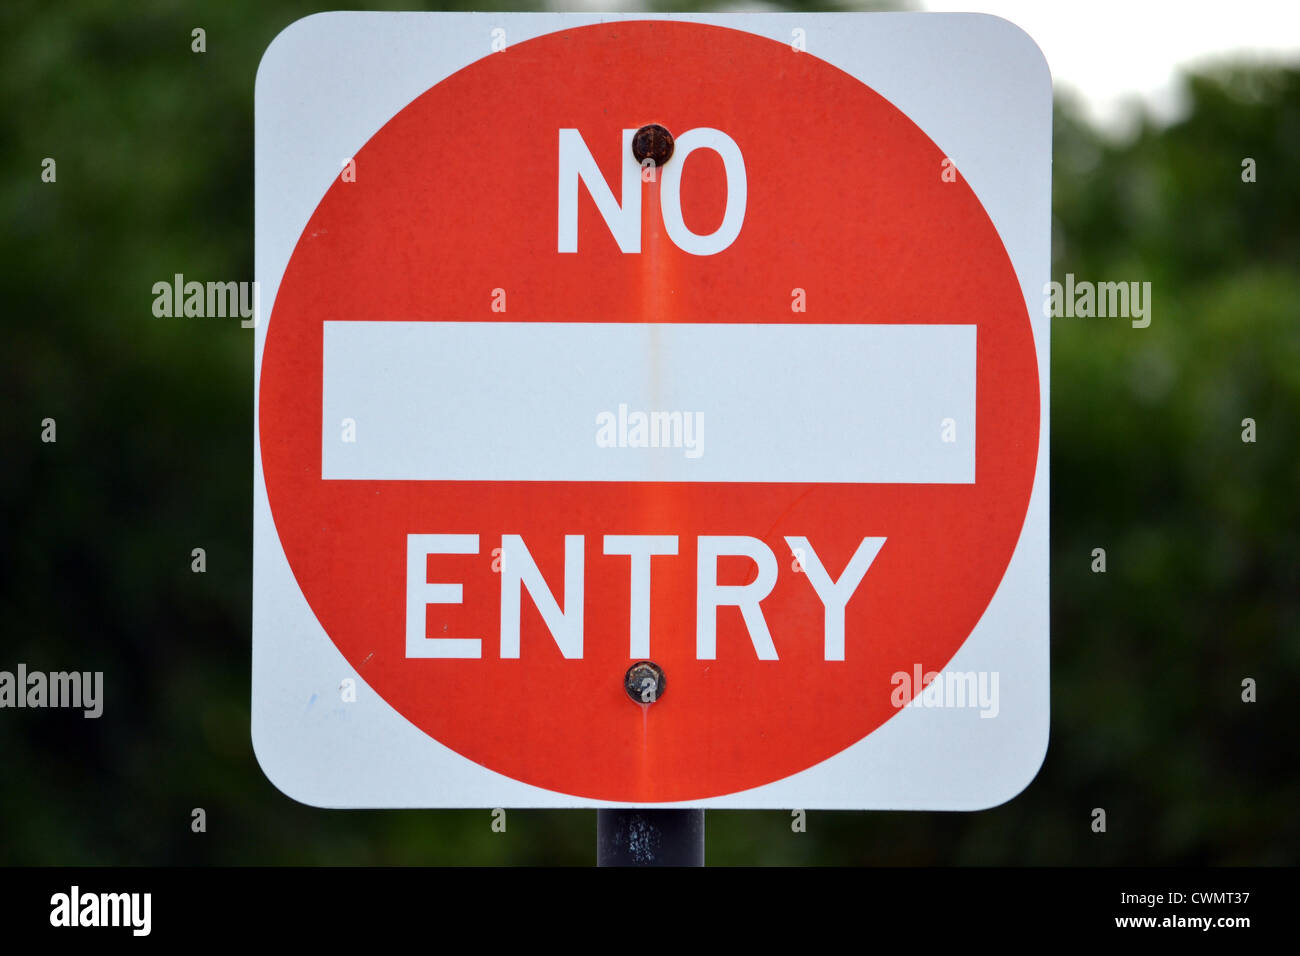 NO ENTRY sign - Stock Image